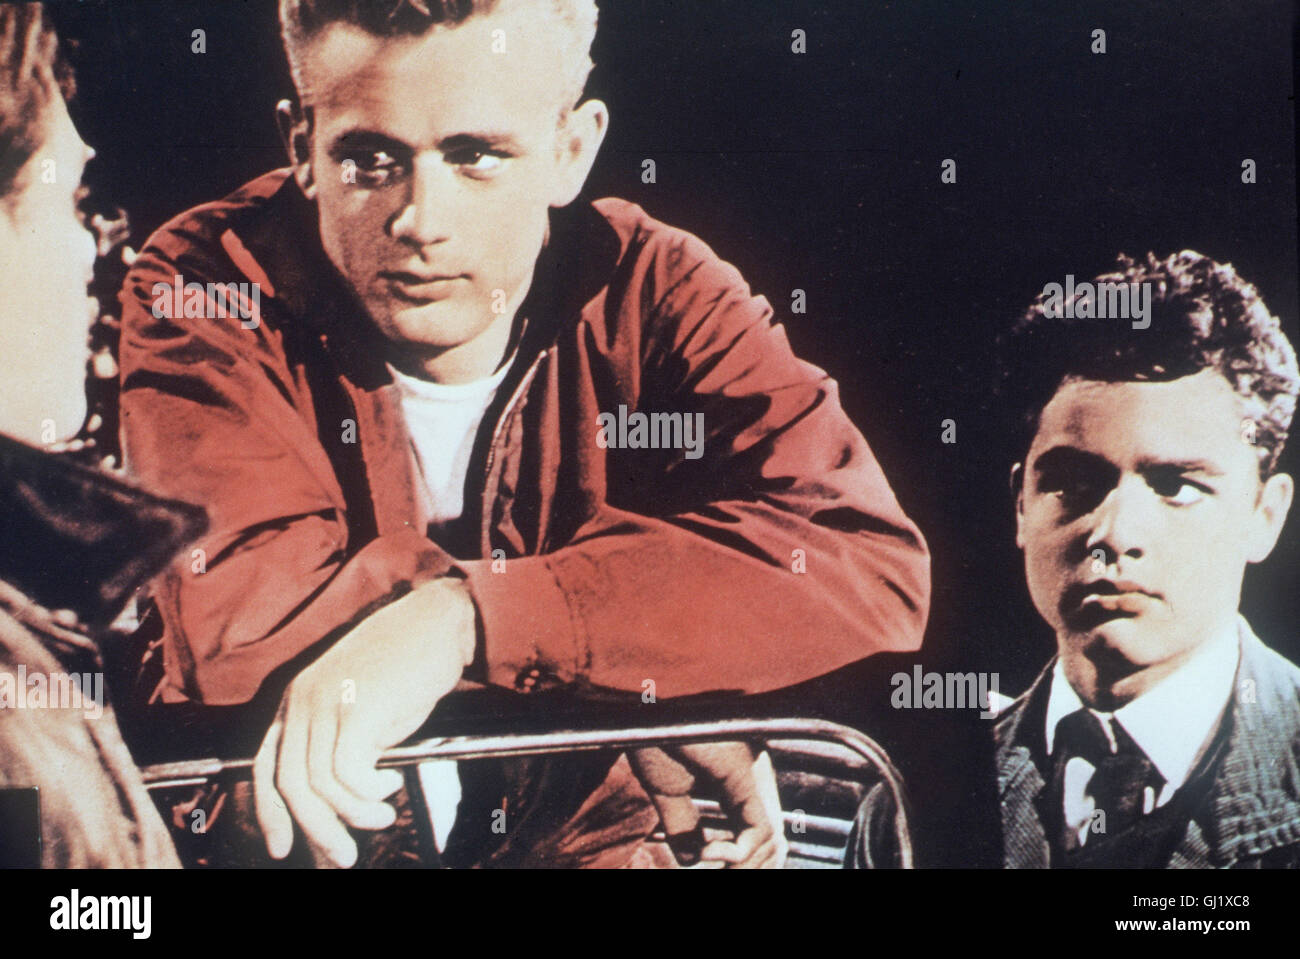 nicholas ray james dean stock photos nicholas ray james dean stock images alamy. Black Bedroom Furniture Sets. Home Design Ideas